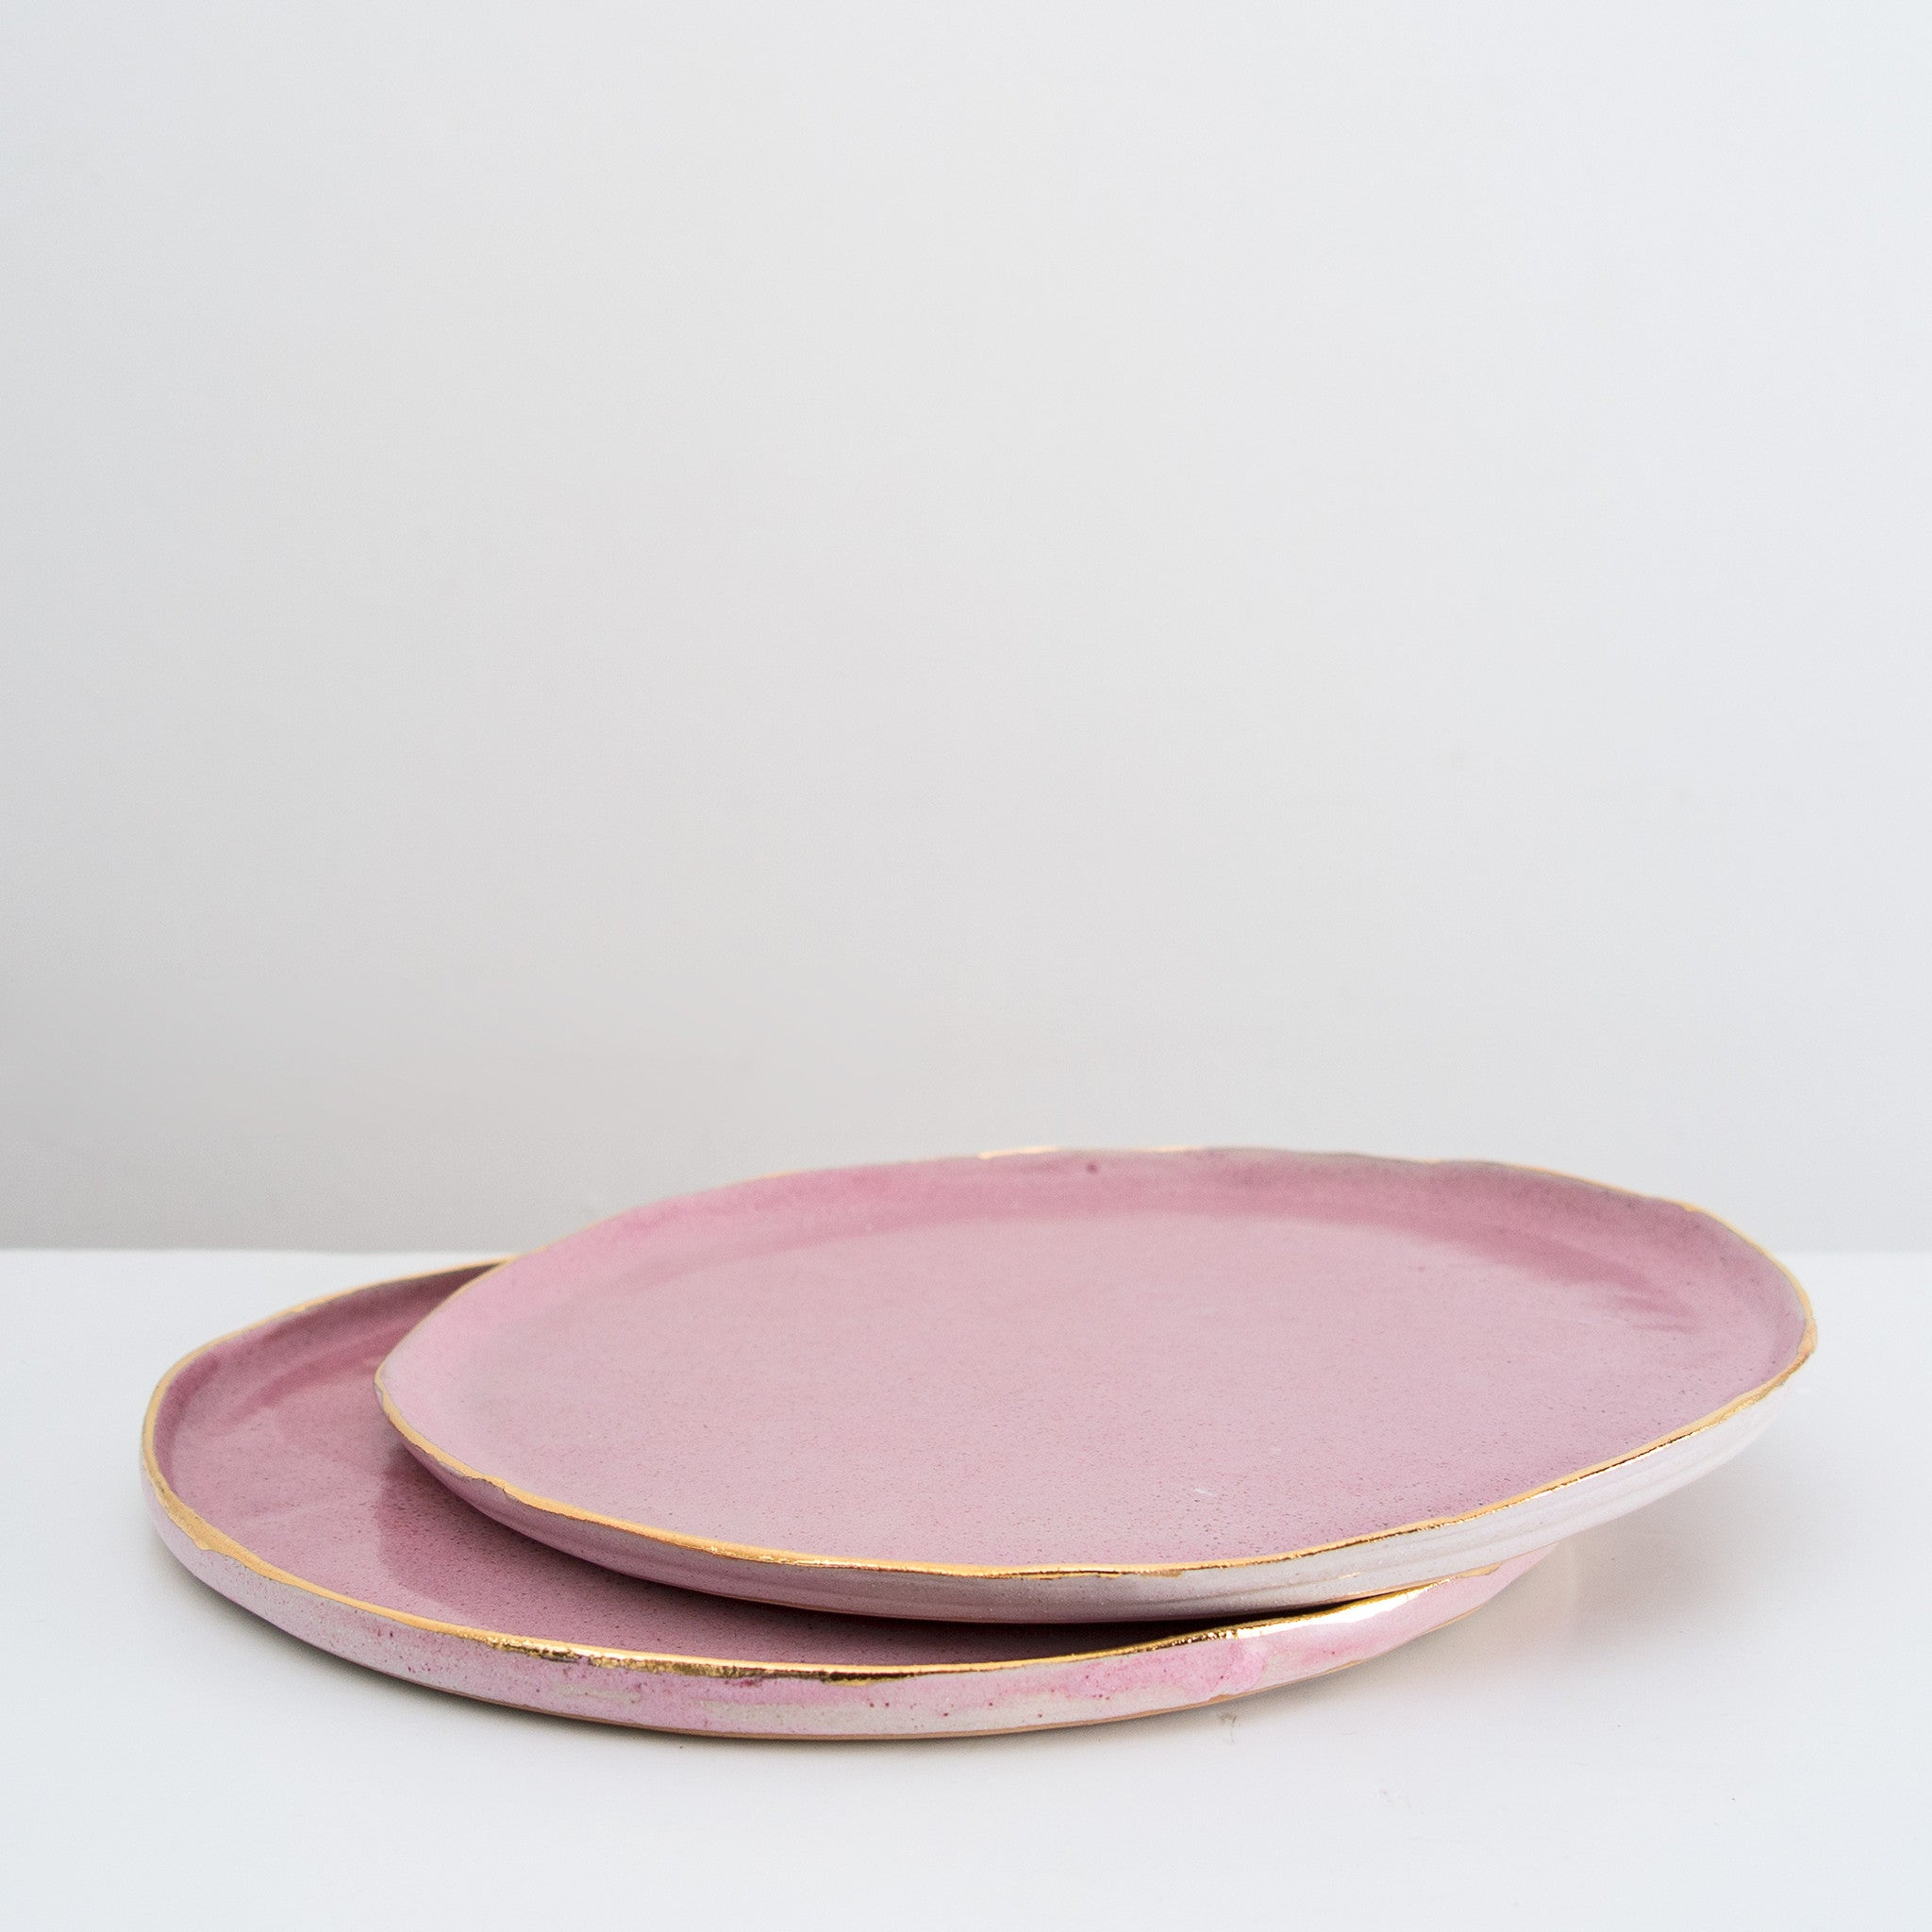 Handmade plate with 24 carat gold